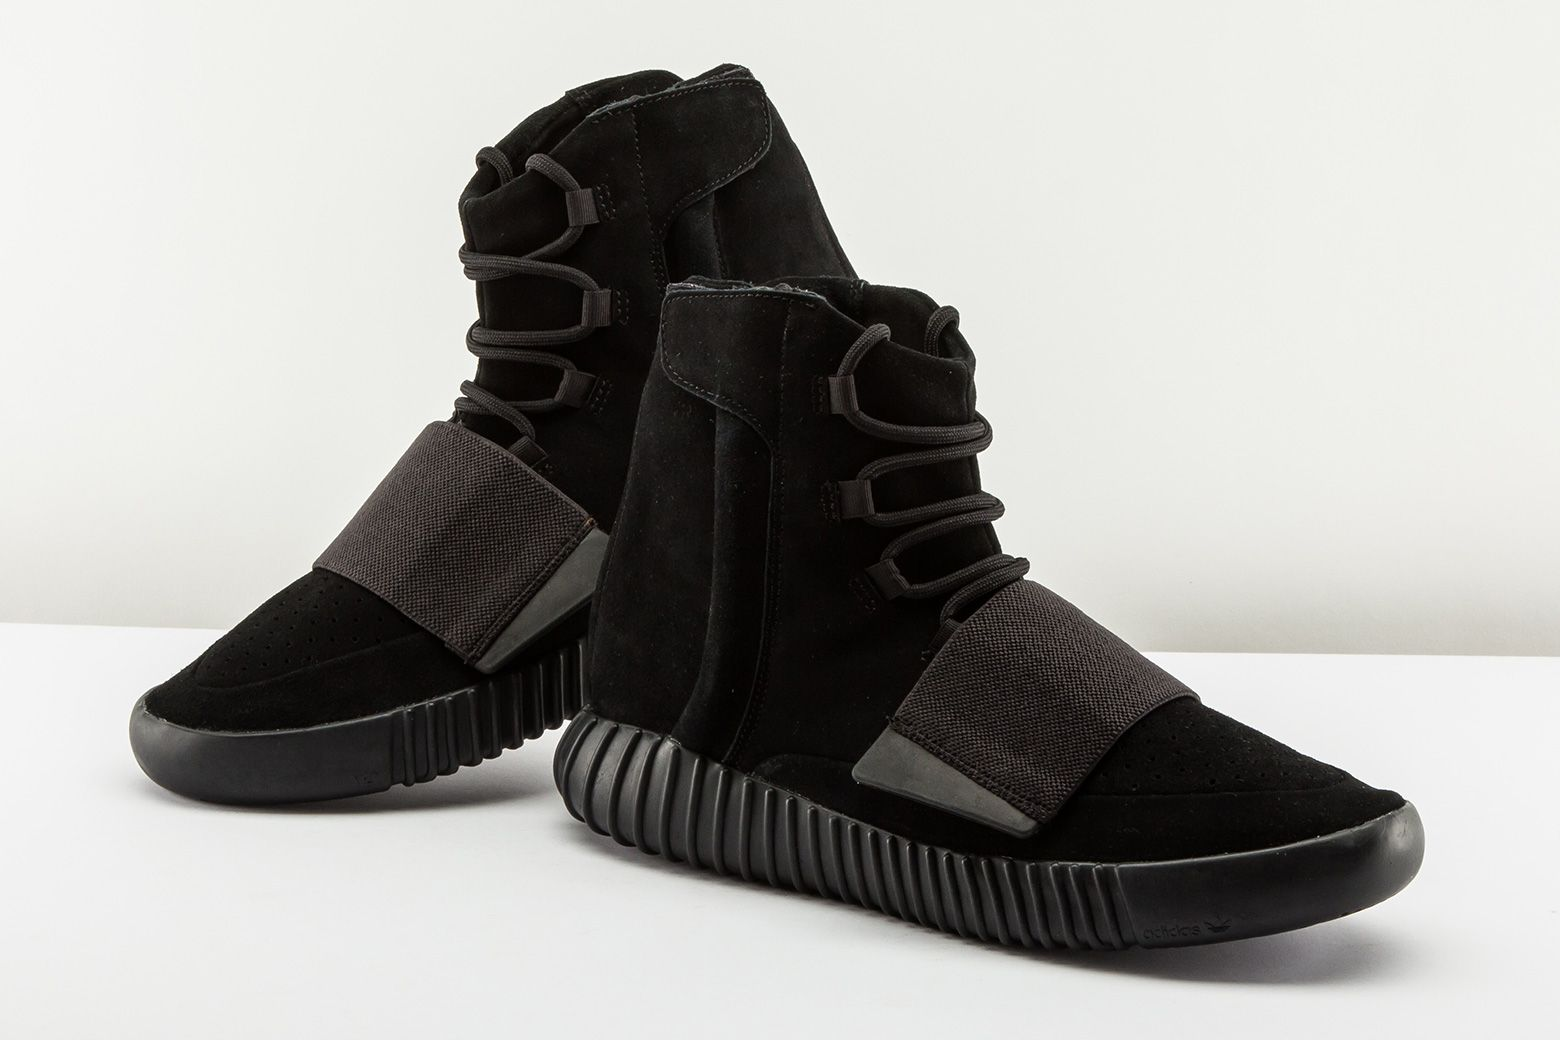 """d9896b7889da1 Rate the Adidas Yeezy 750 Boost """"Triple Black"""" from 1 - 10. https"""